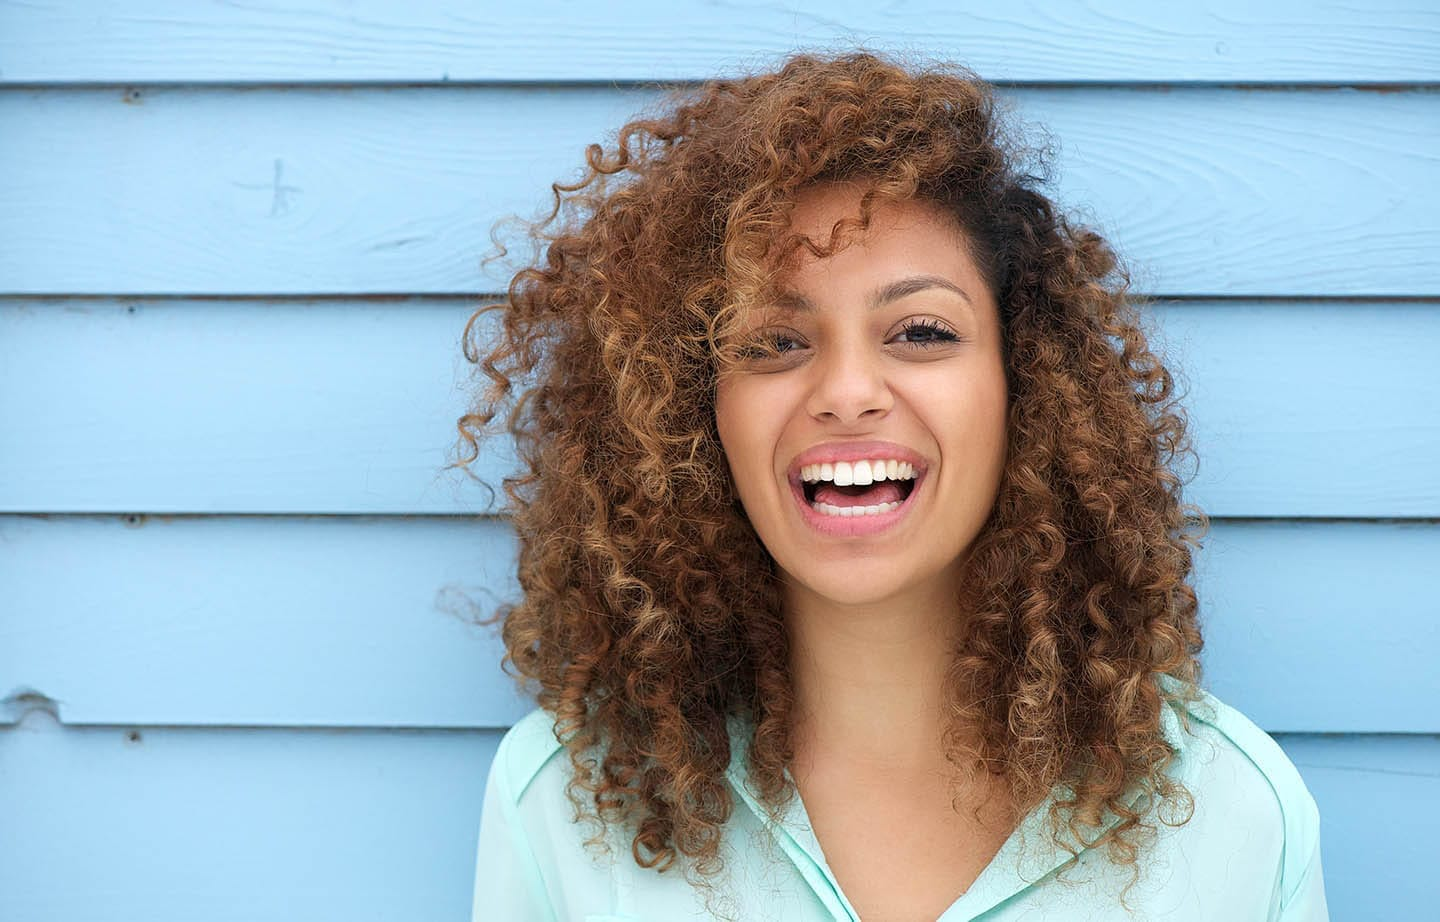 girl with curly hair smiling against blue wall